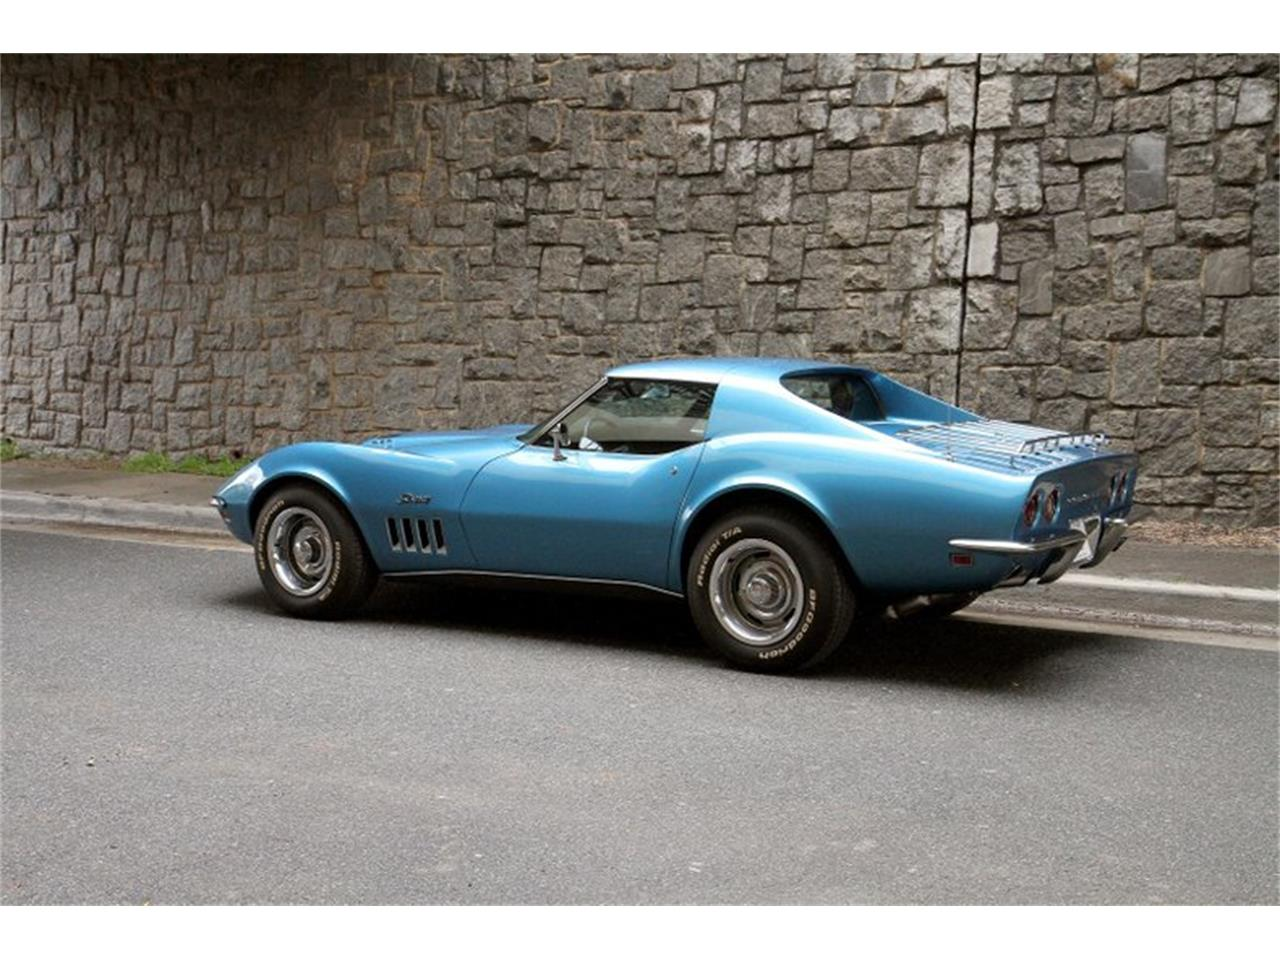 Large Picture of 1969 Corvette located in Atlanta Georgia - $52,900.00 Offered by Motorcar Studio - PQNZ